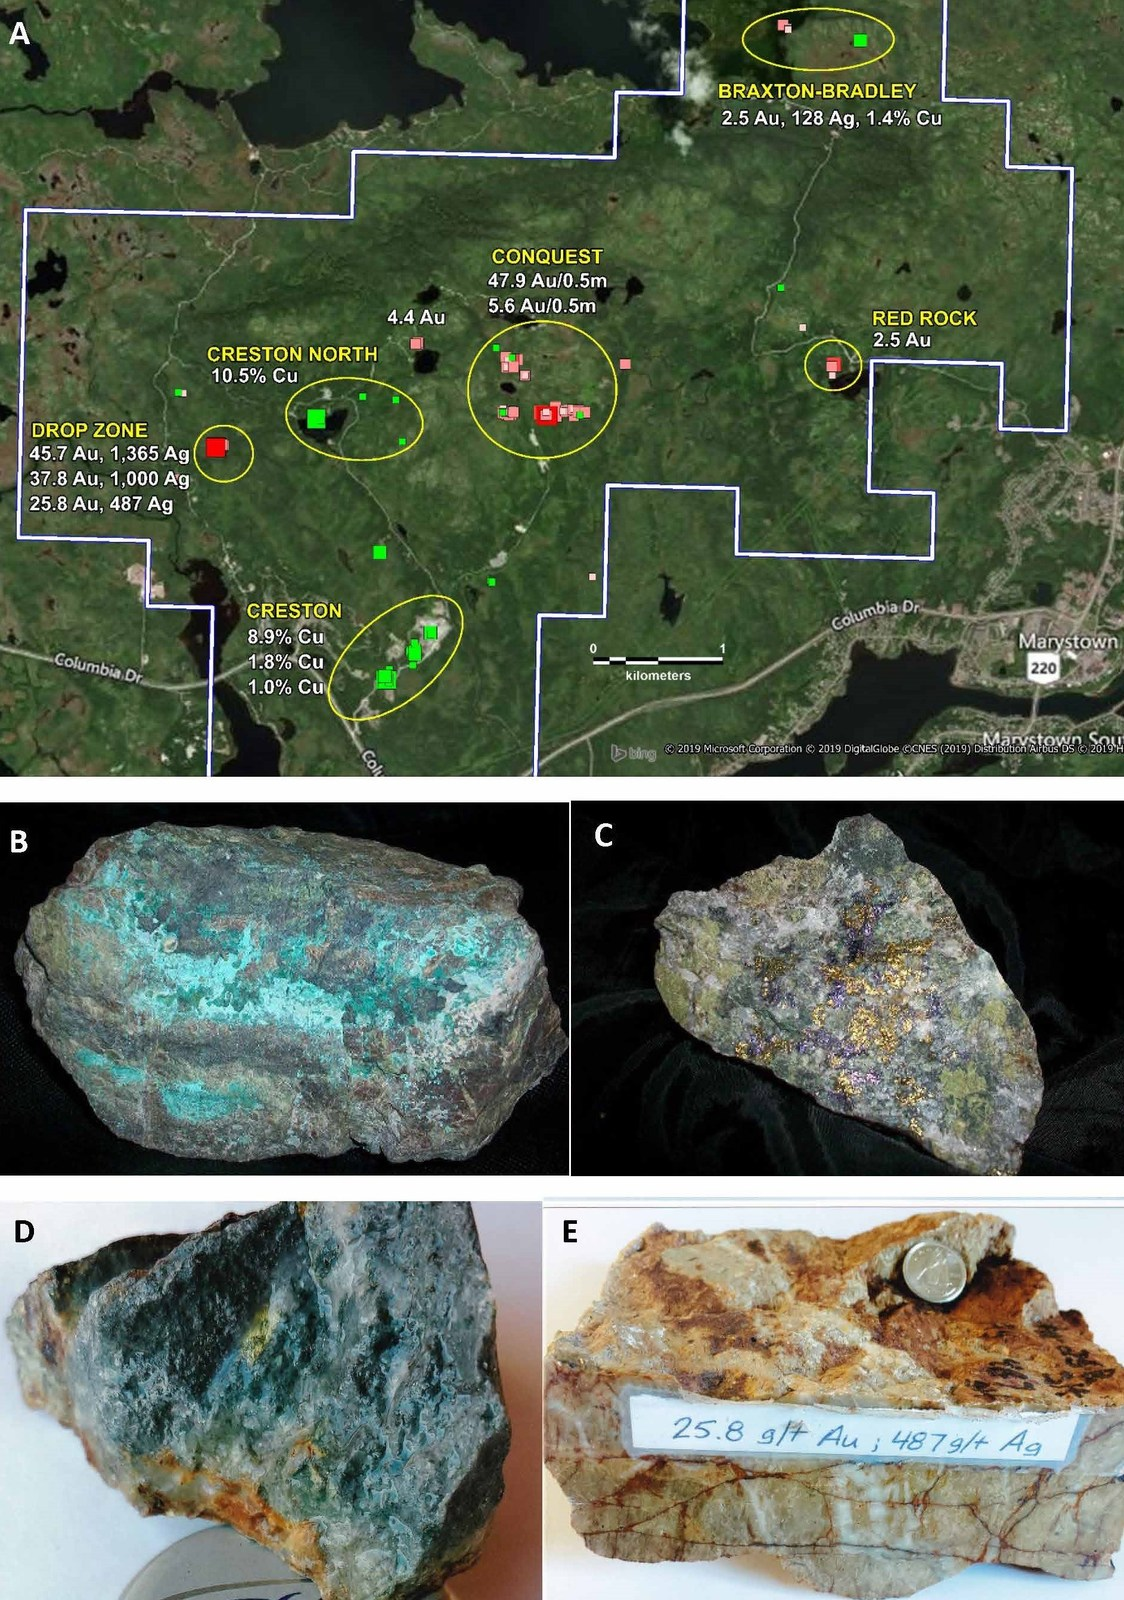 A) Map Showing the 5 gold and 2 copper occurrences at Root & Cellar. B) Malachite and copper sulphides from Creston North. C) Bornite and Chalcopyrite from Creston. D) Visible gold from Conquest Zone. E) High grade gold and silver from Drop Zone.